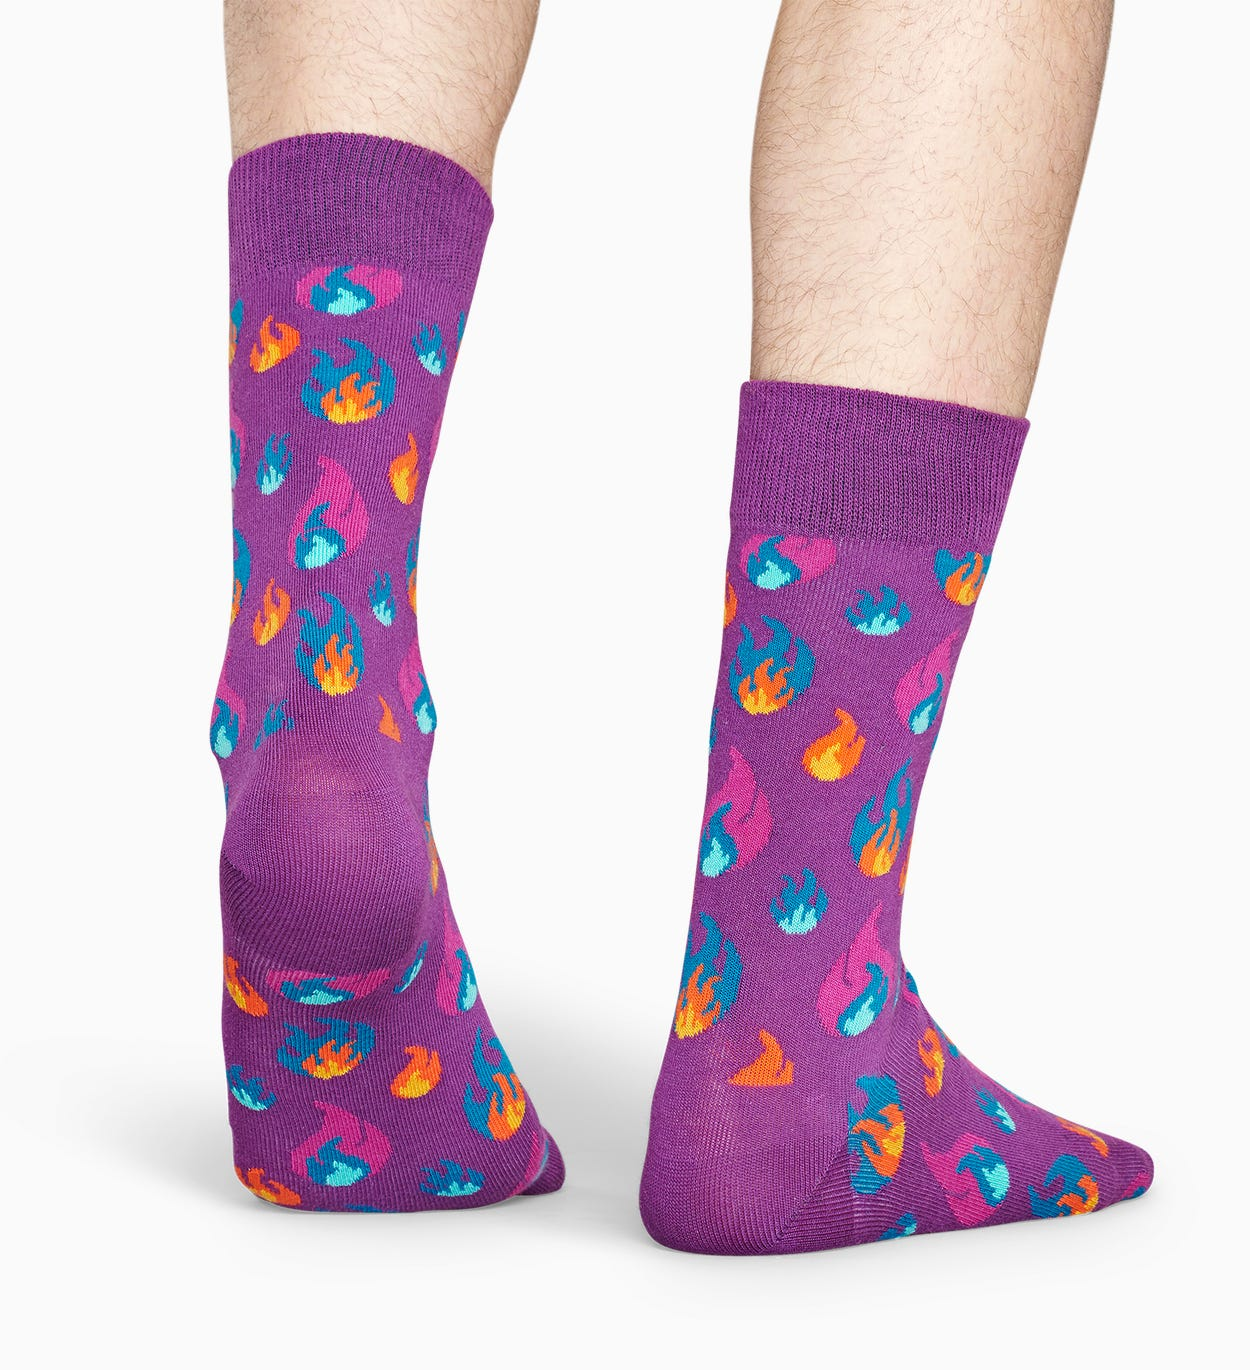 Gemusterte lilafarbene Socken: Flammen | Happy Socks